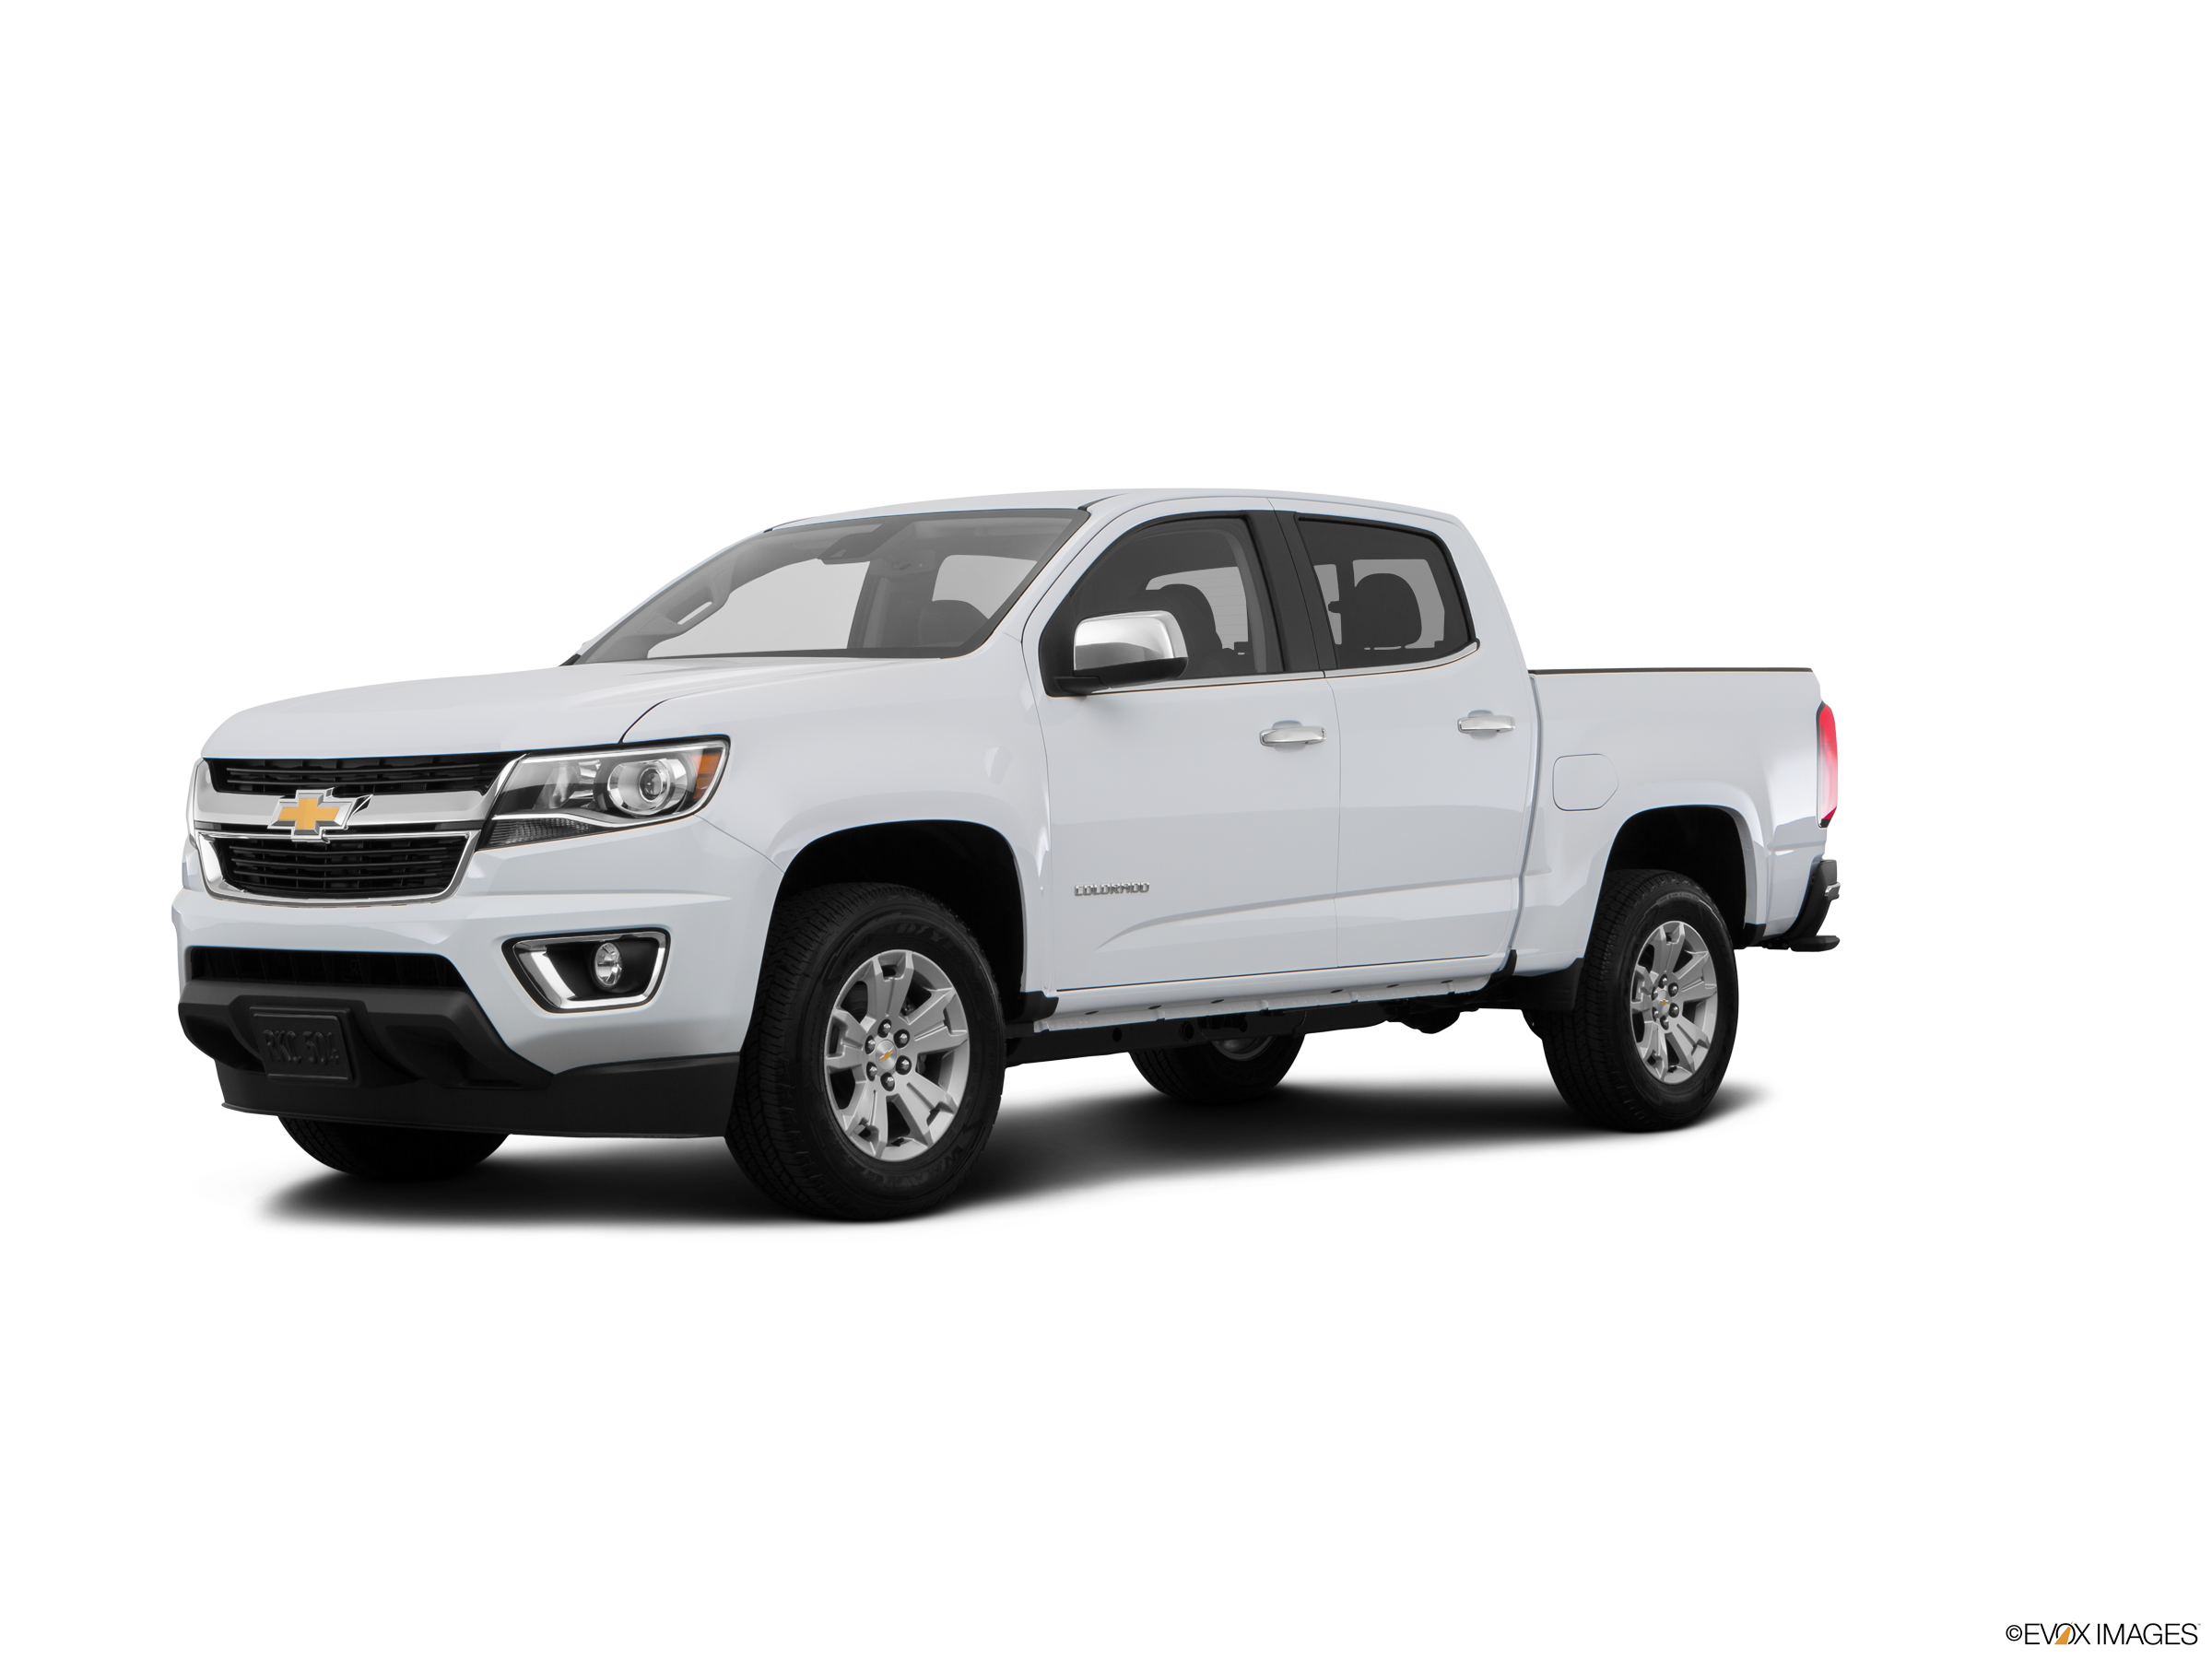 with chevrolet white and front here the threads chevy pics also nice gm truck s color club alloy rims forum has it grill bumper matched a really colorado